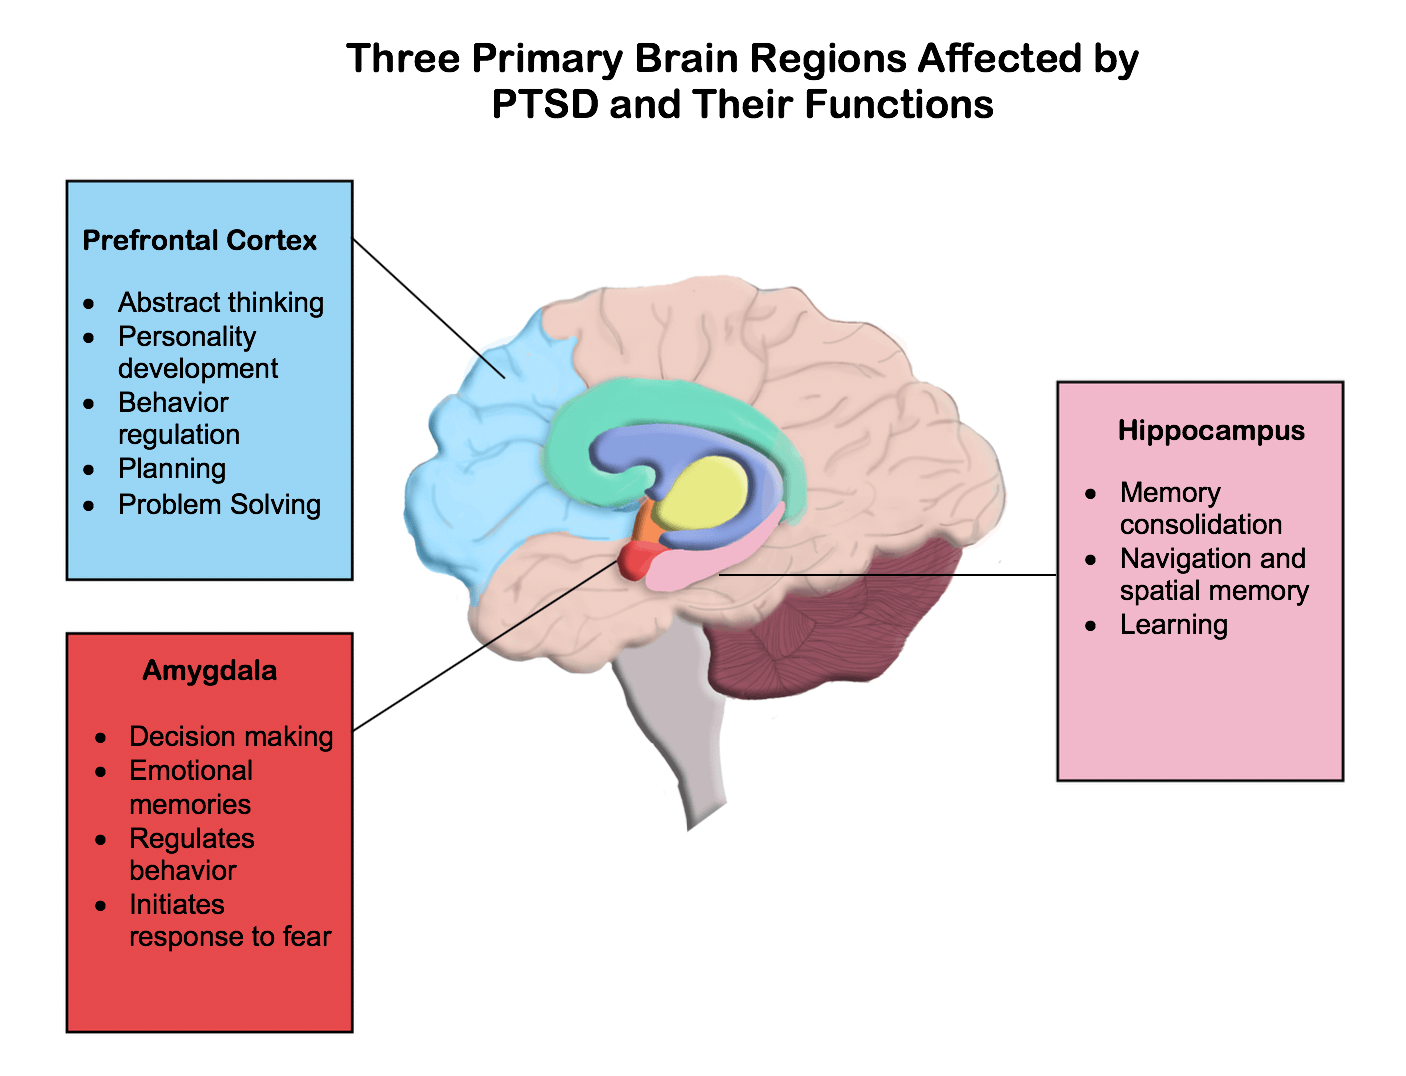 parts of the brain that ptsd affects